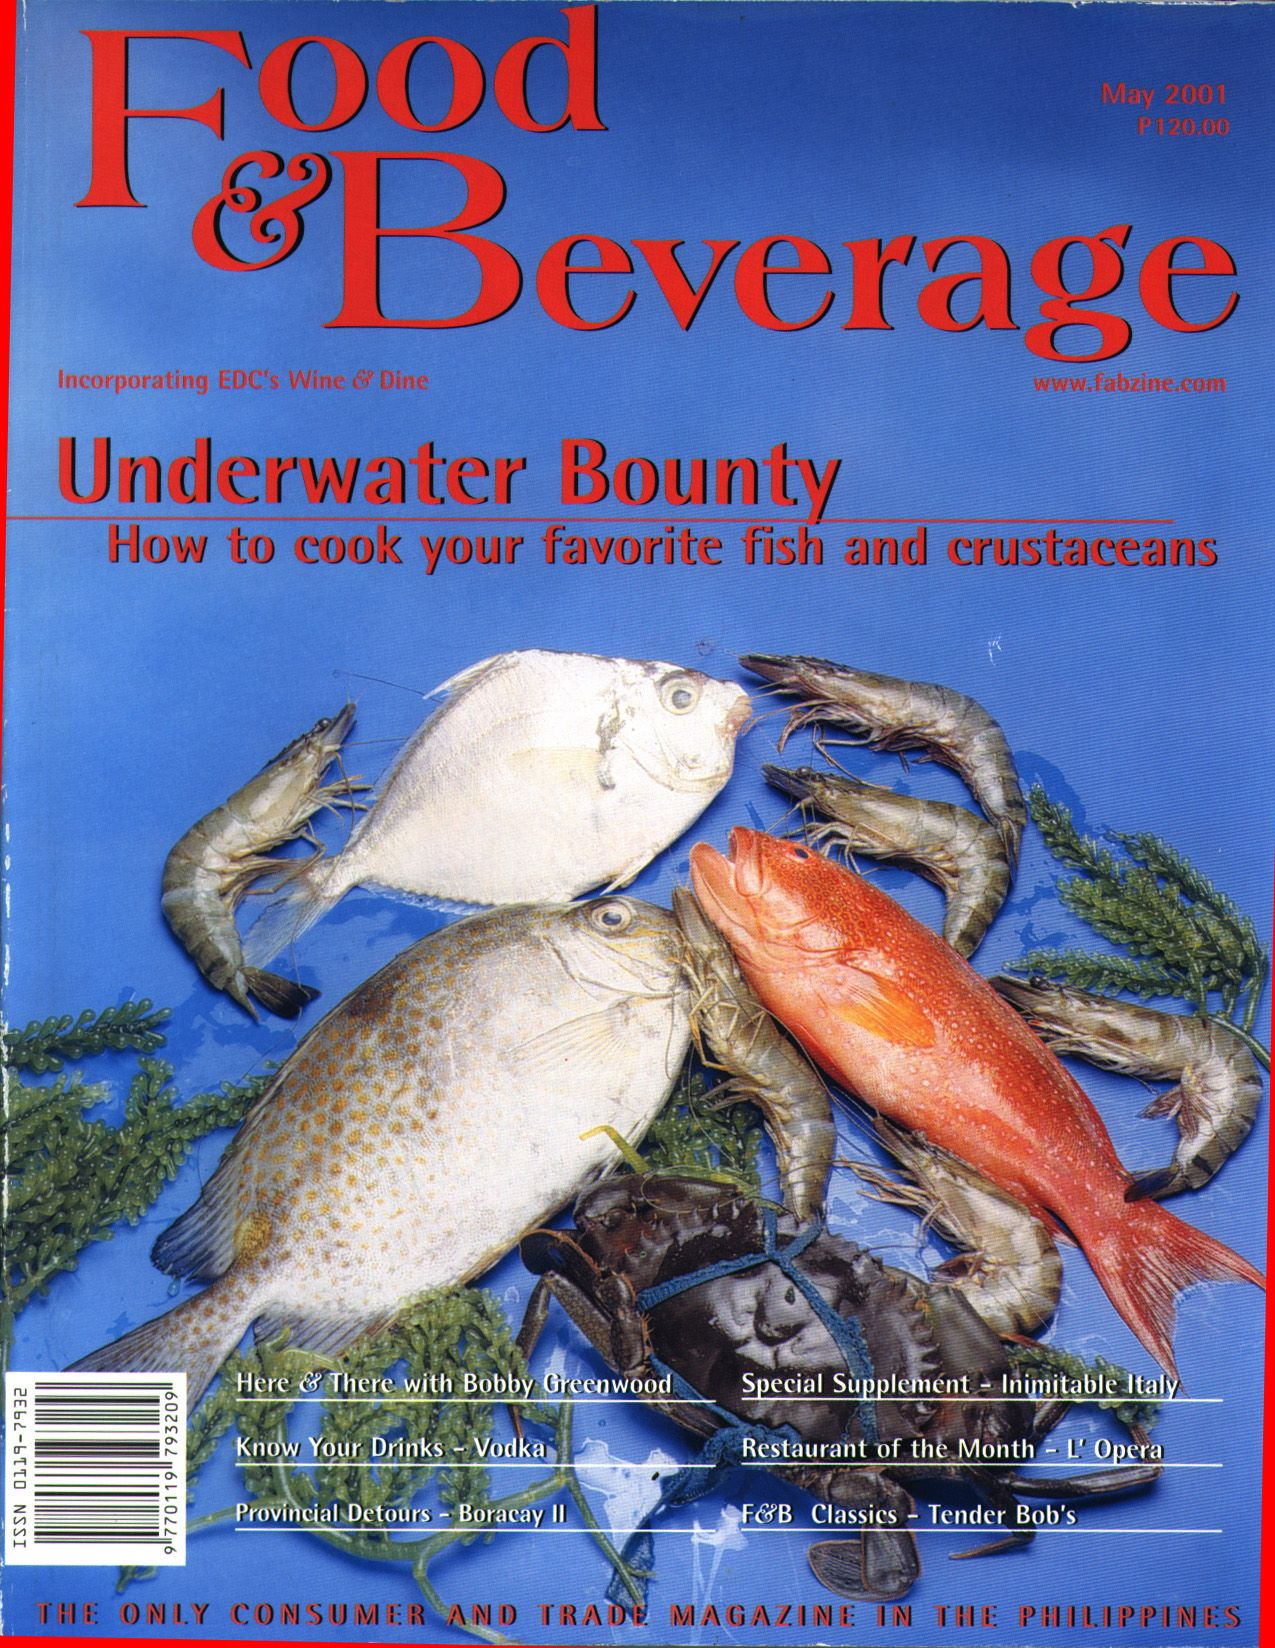 underwater bounty cover